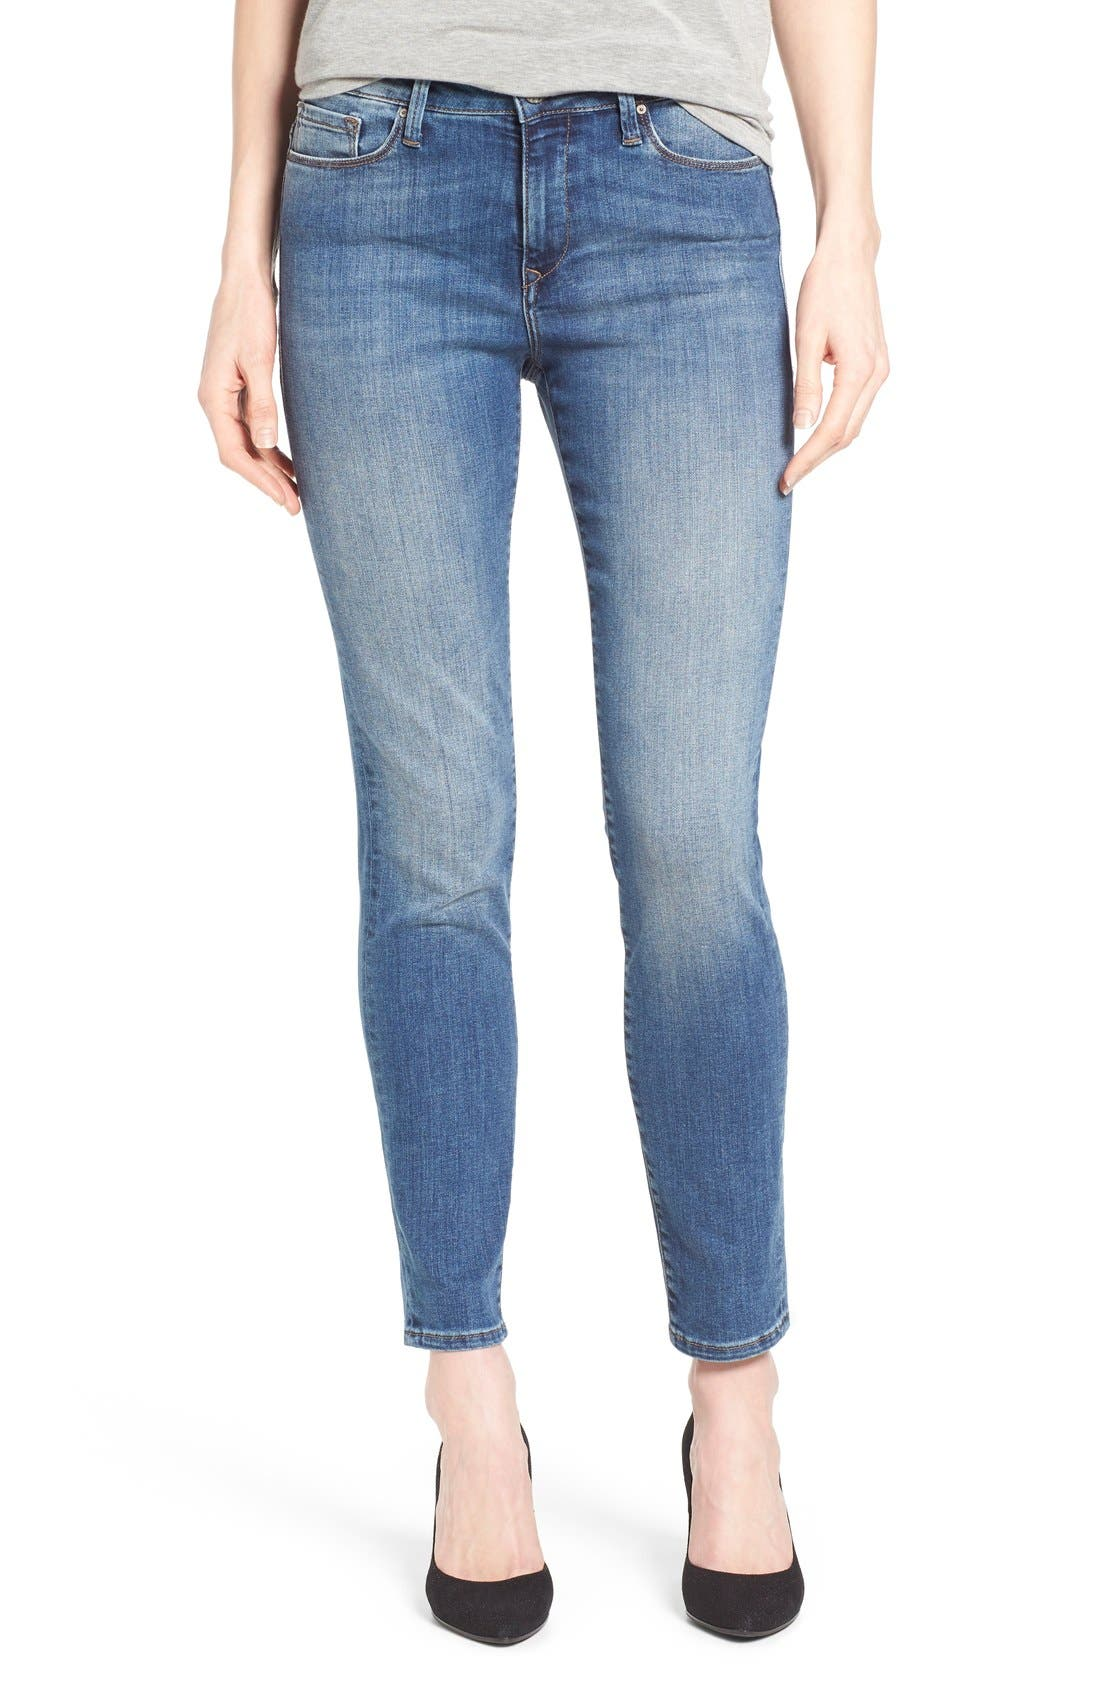 'Alissa' Stretch Slim Ankle Jeans,                         Main,                         color, Light Blue